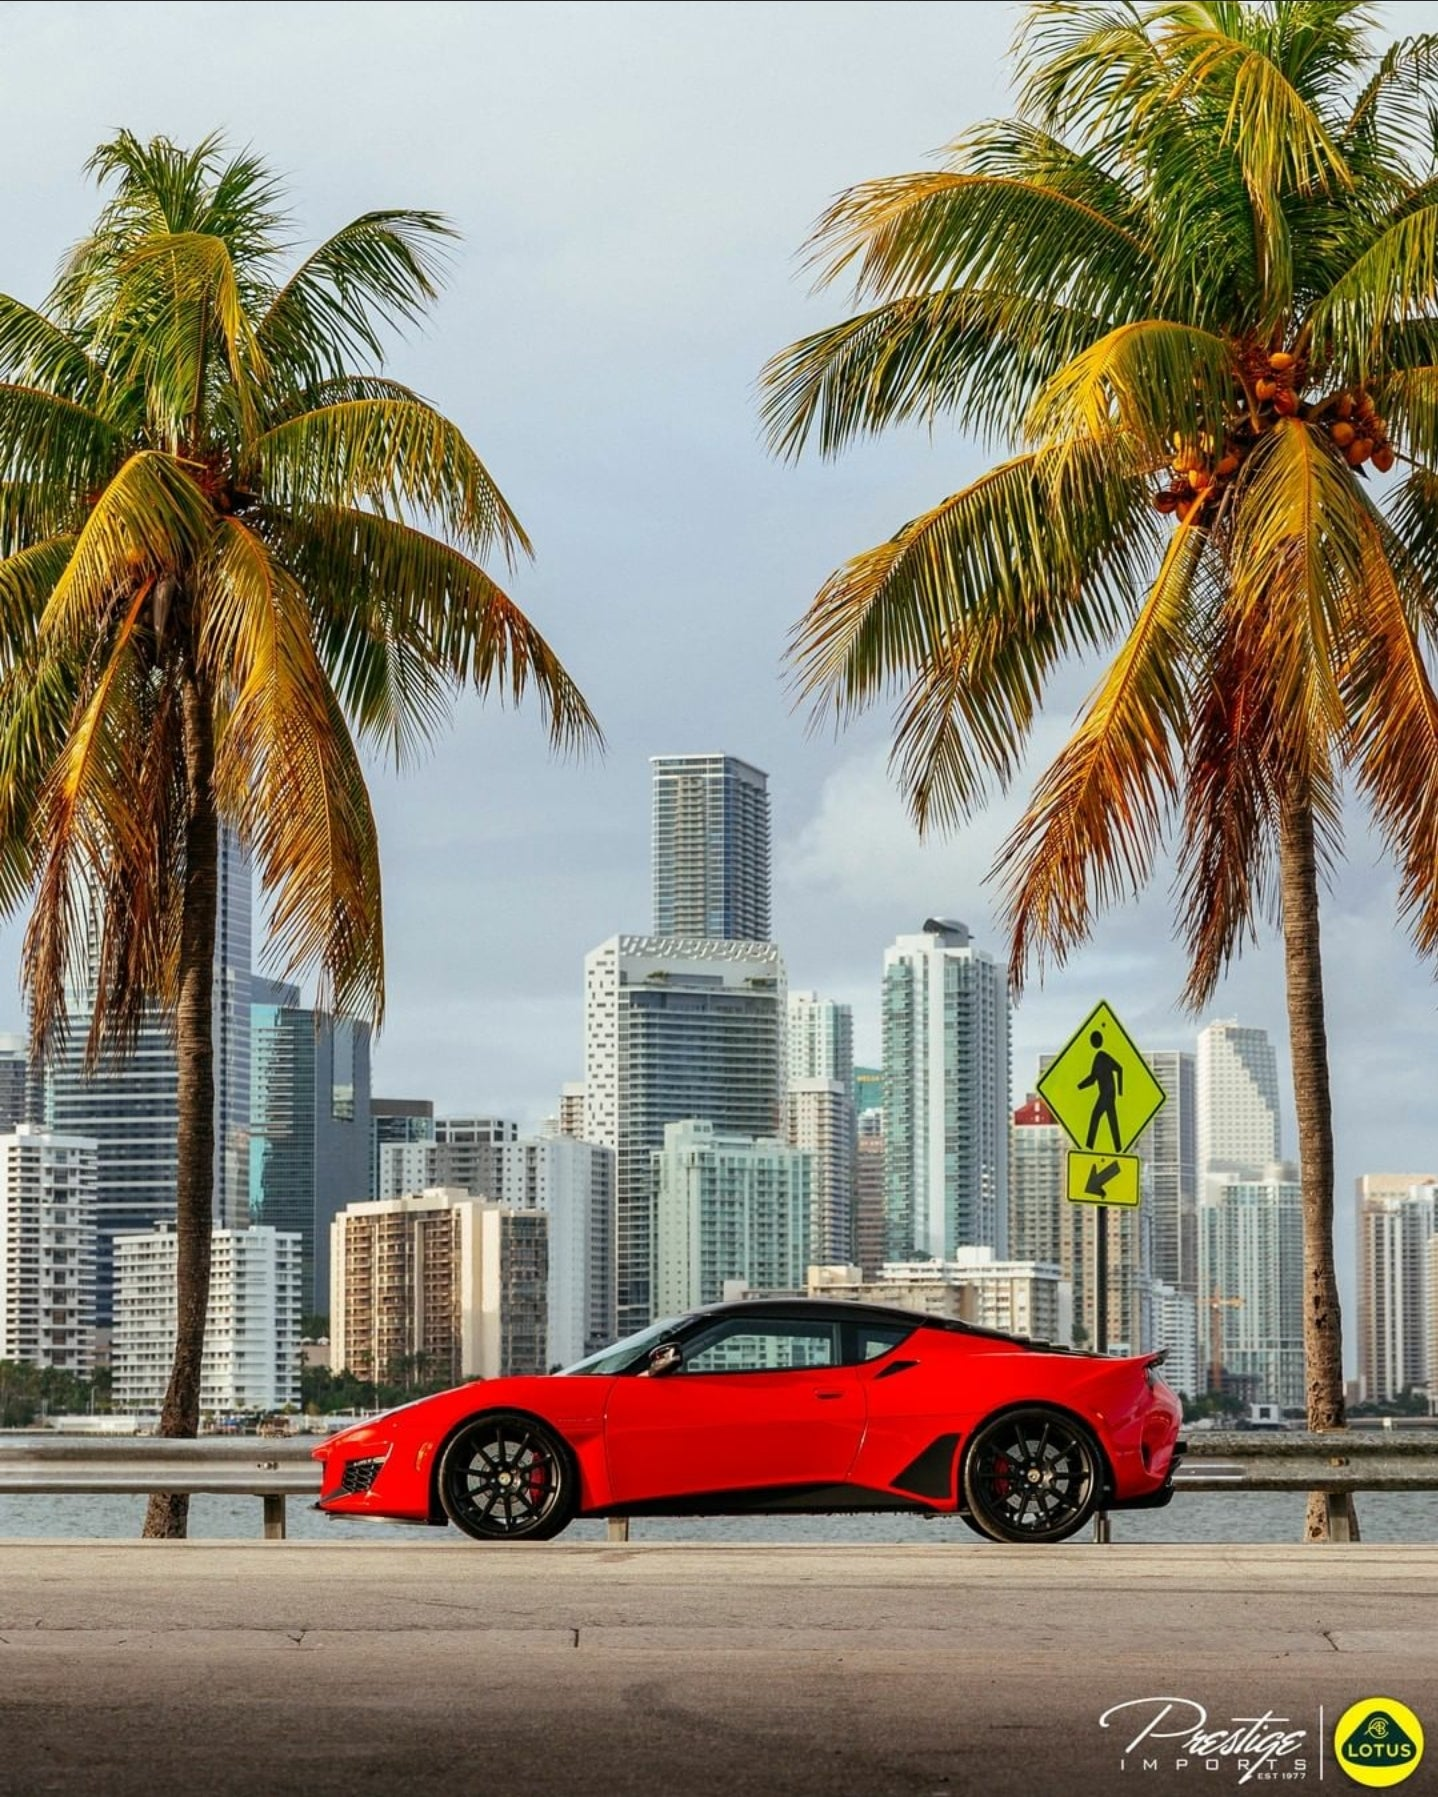 Lotus Evora GT on the Lotus of Miami Instagram account